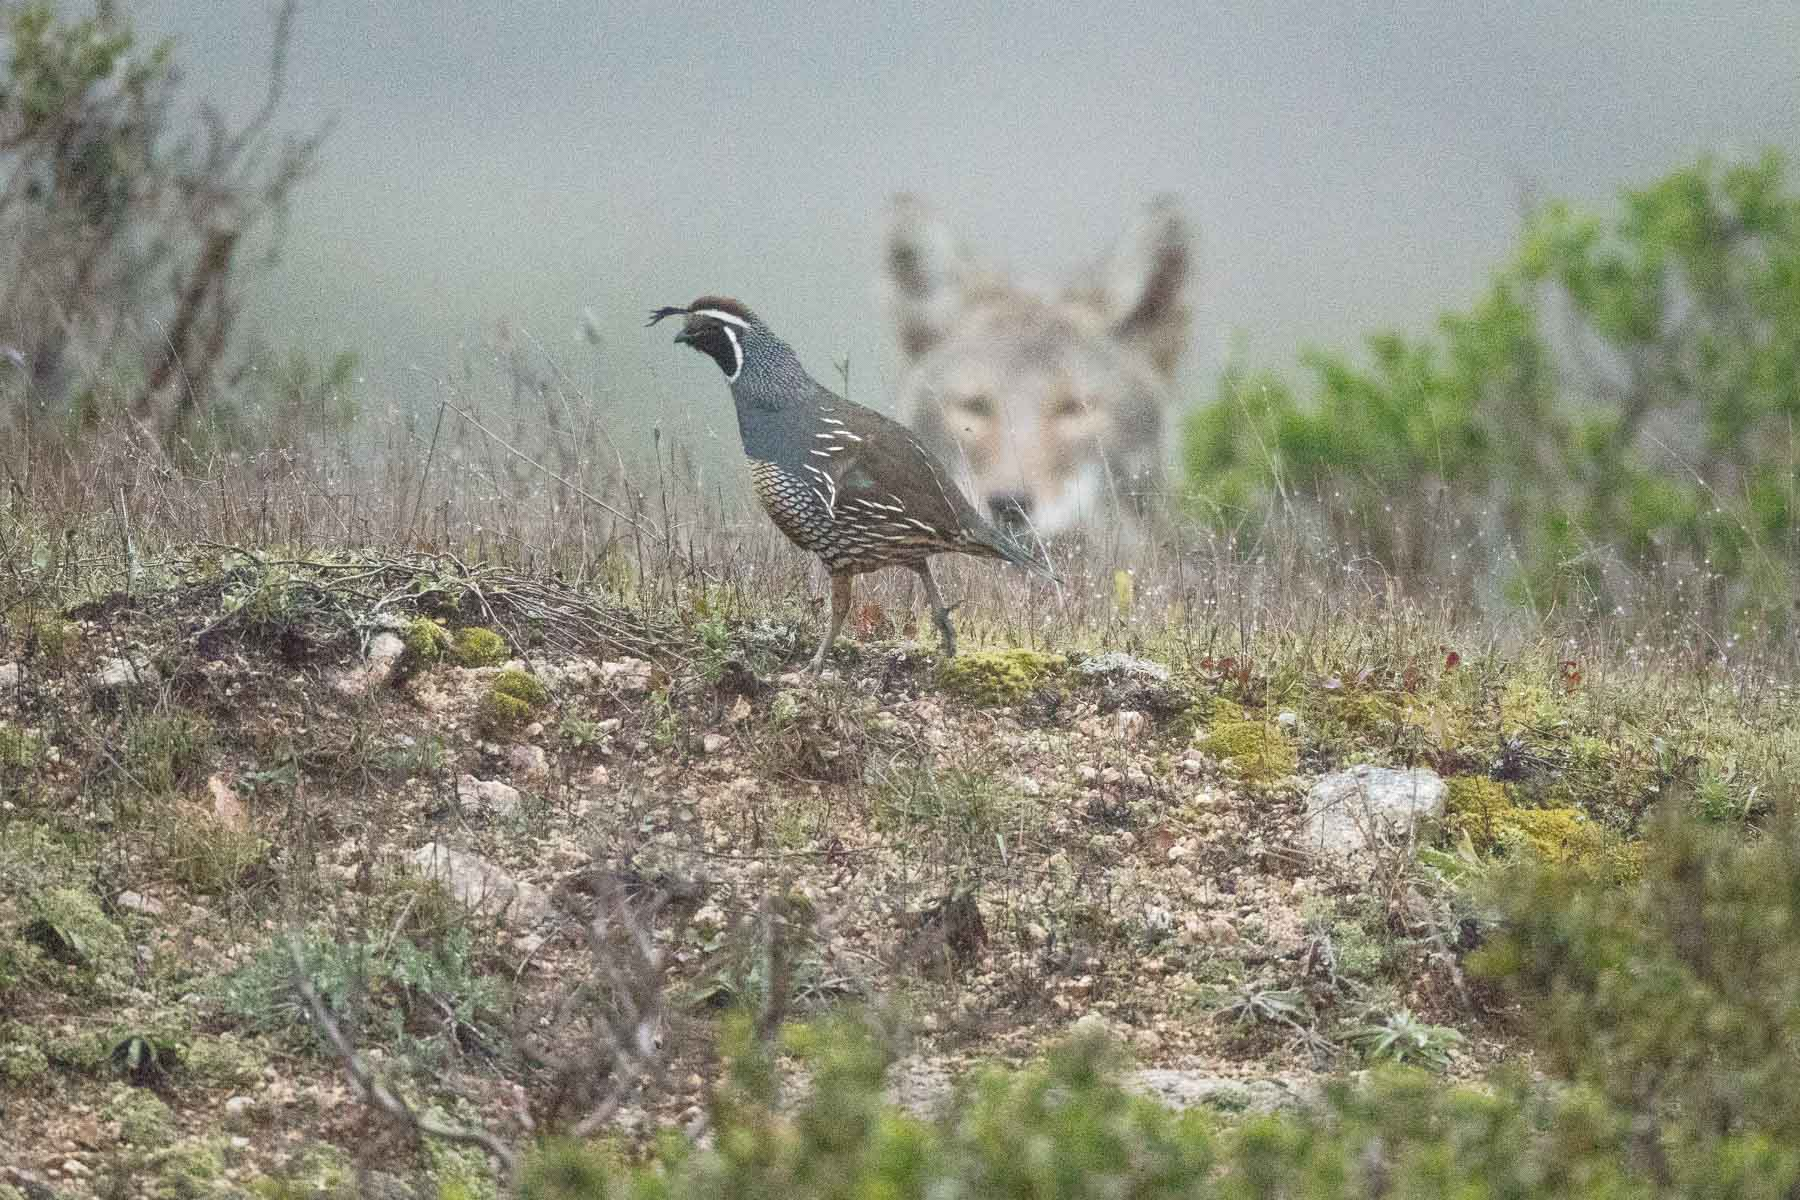 Coyote contemplating a California Quail, for breakfast.